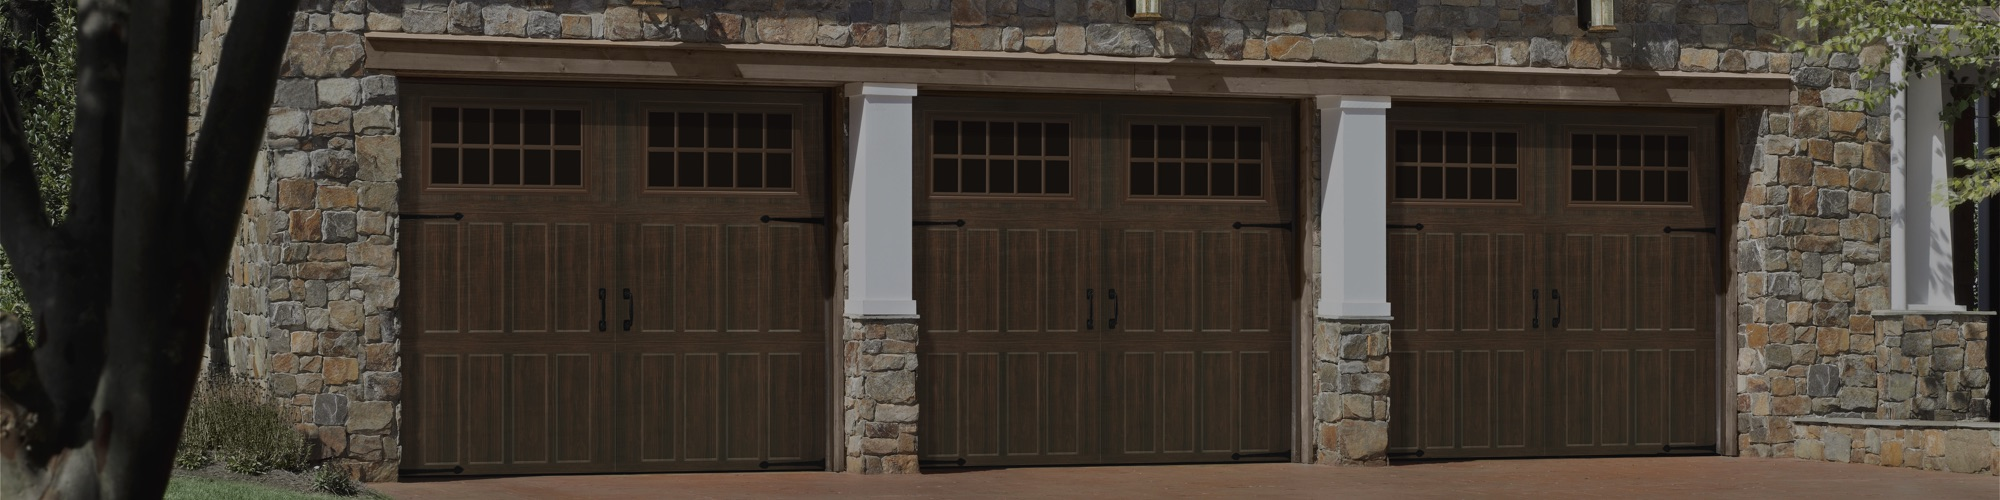 The Garage Door Depot  Comox Valleys 1 Garage Door Company